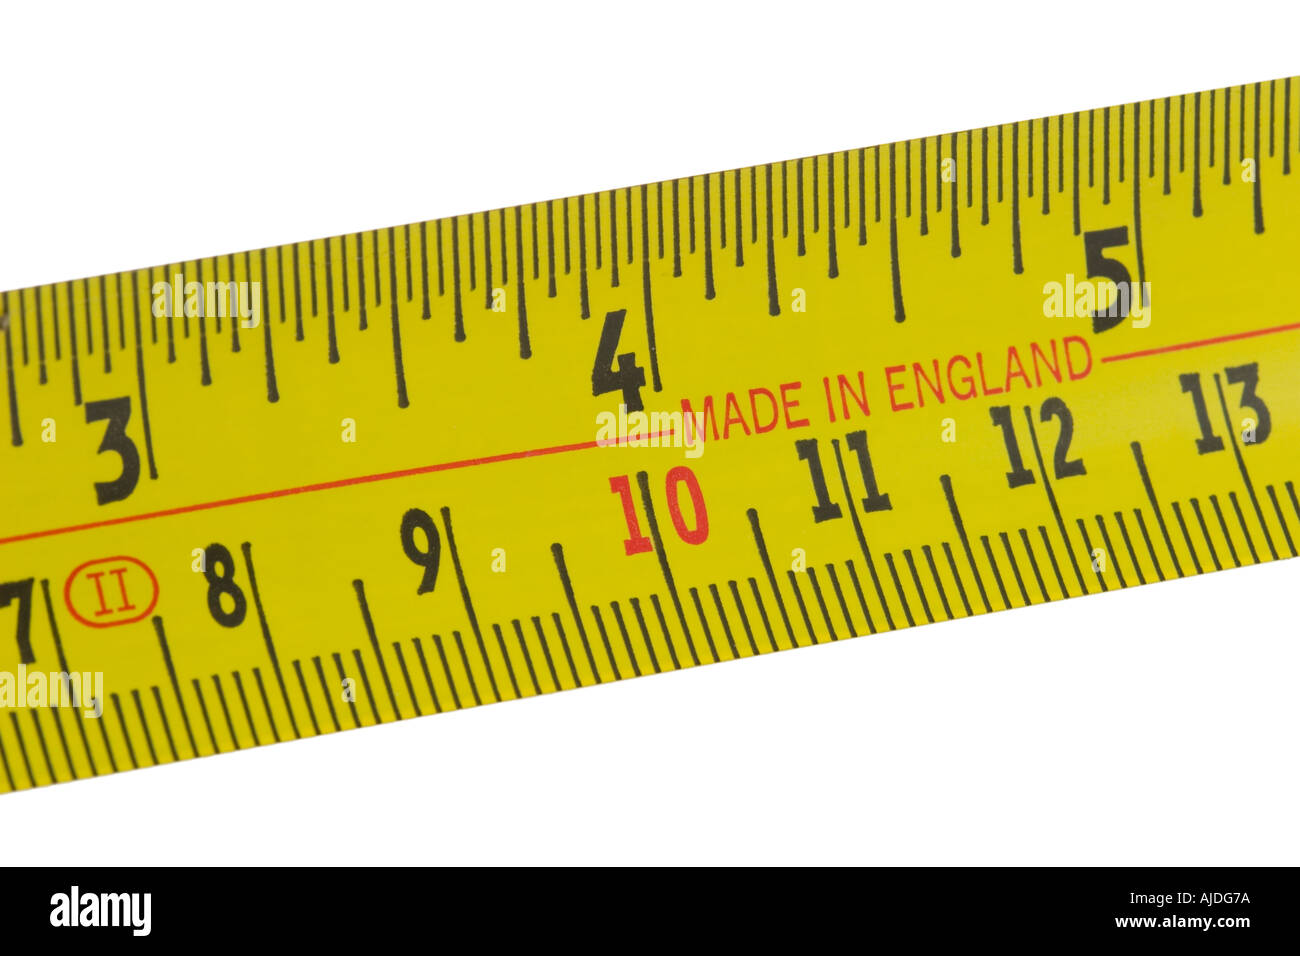 Made in England printed tape measure - Stock Image